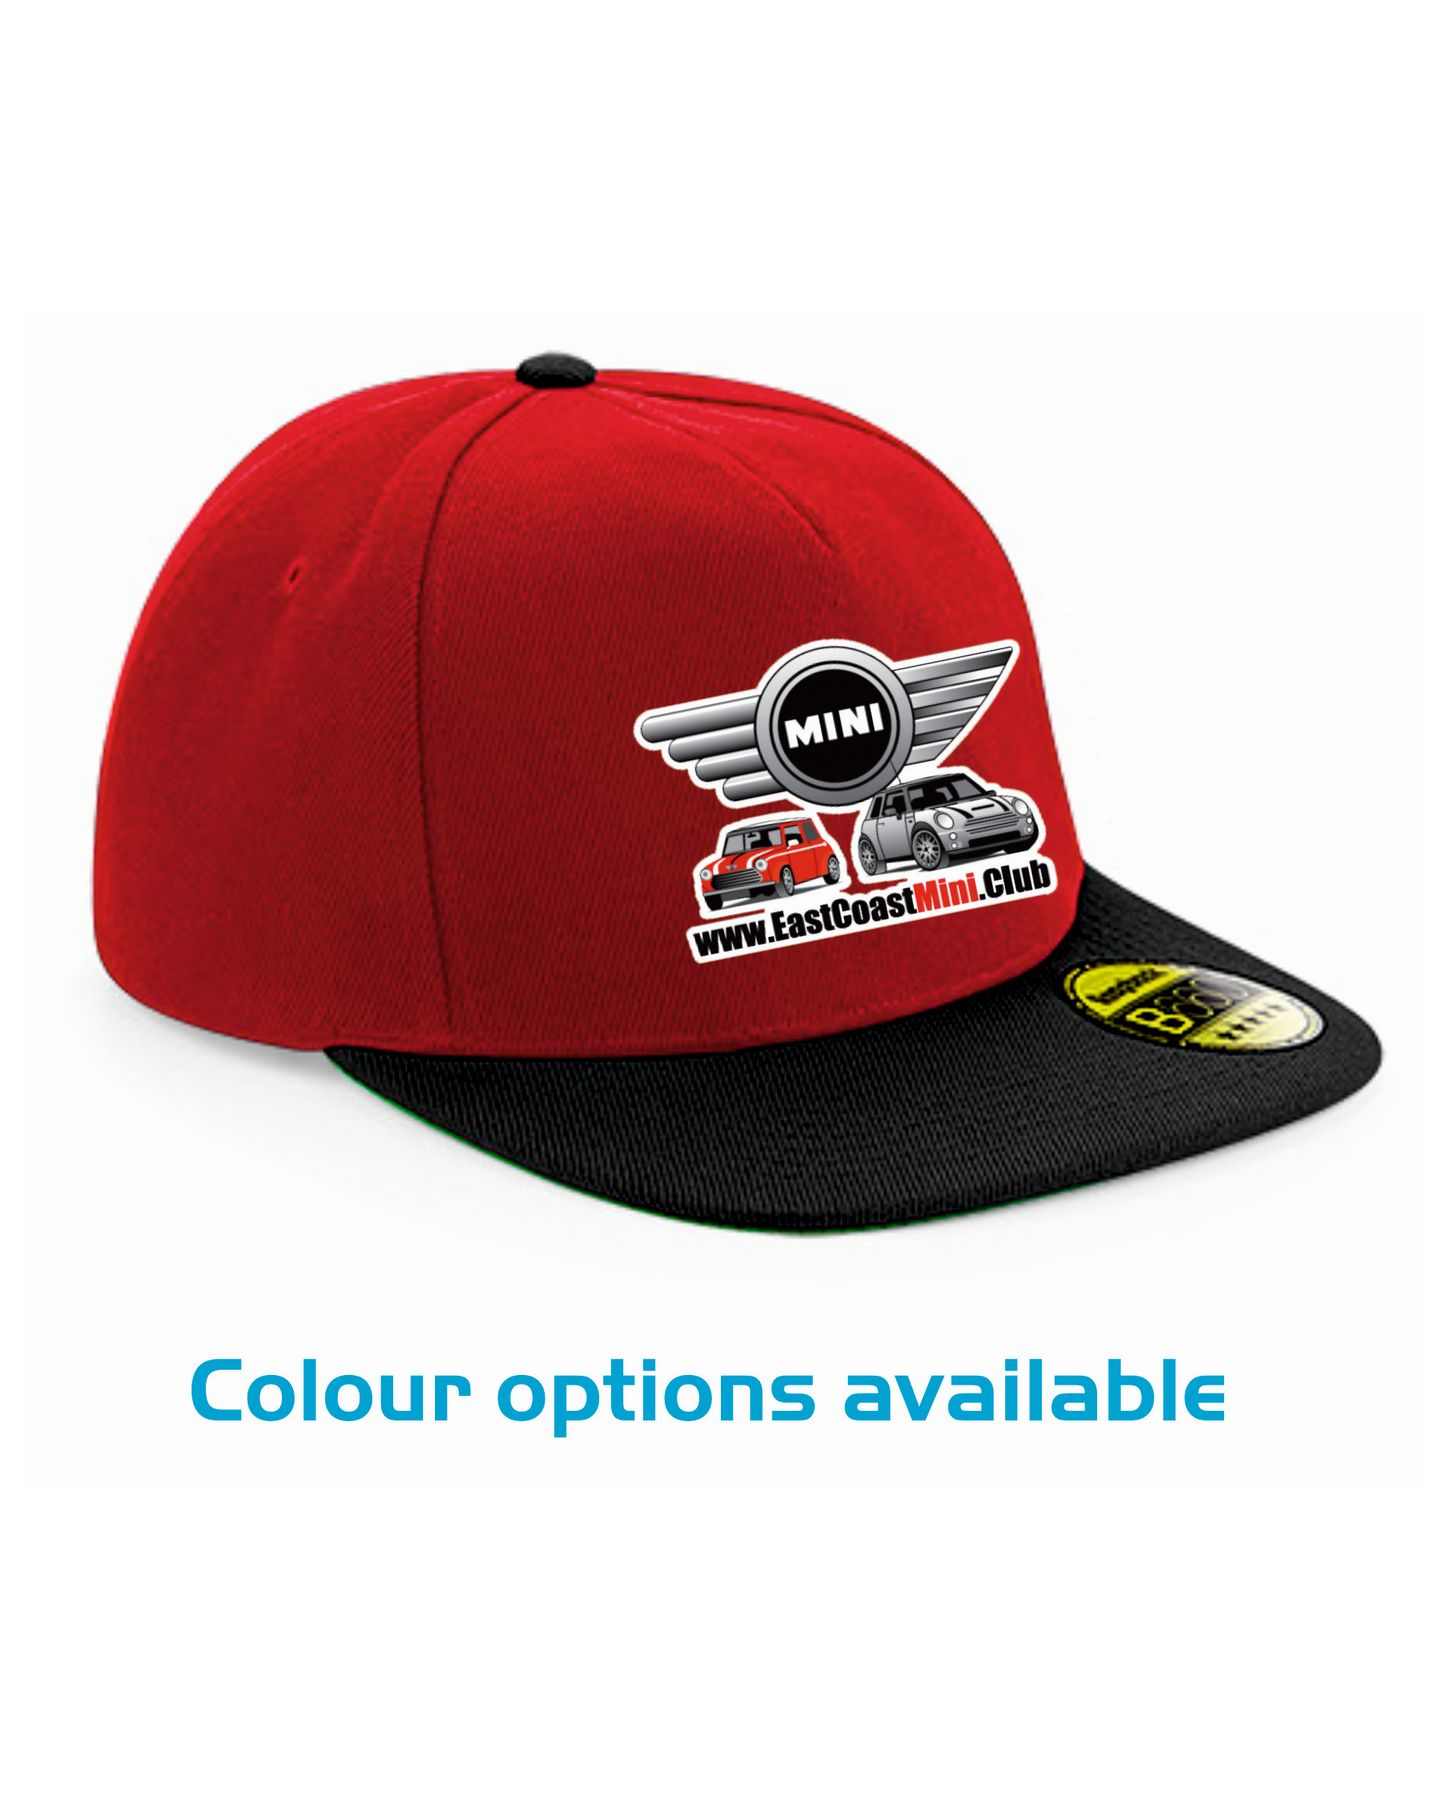 East Coast Mini Club – Flat Peak Snapback